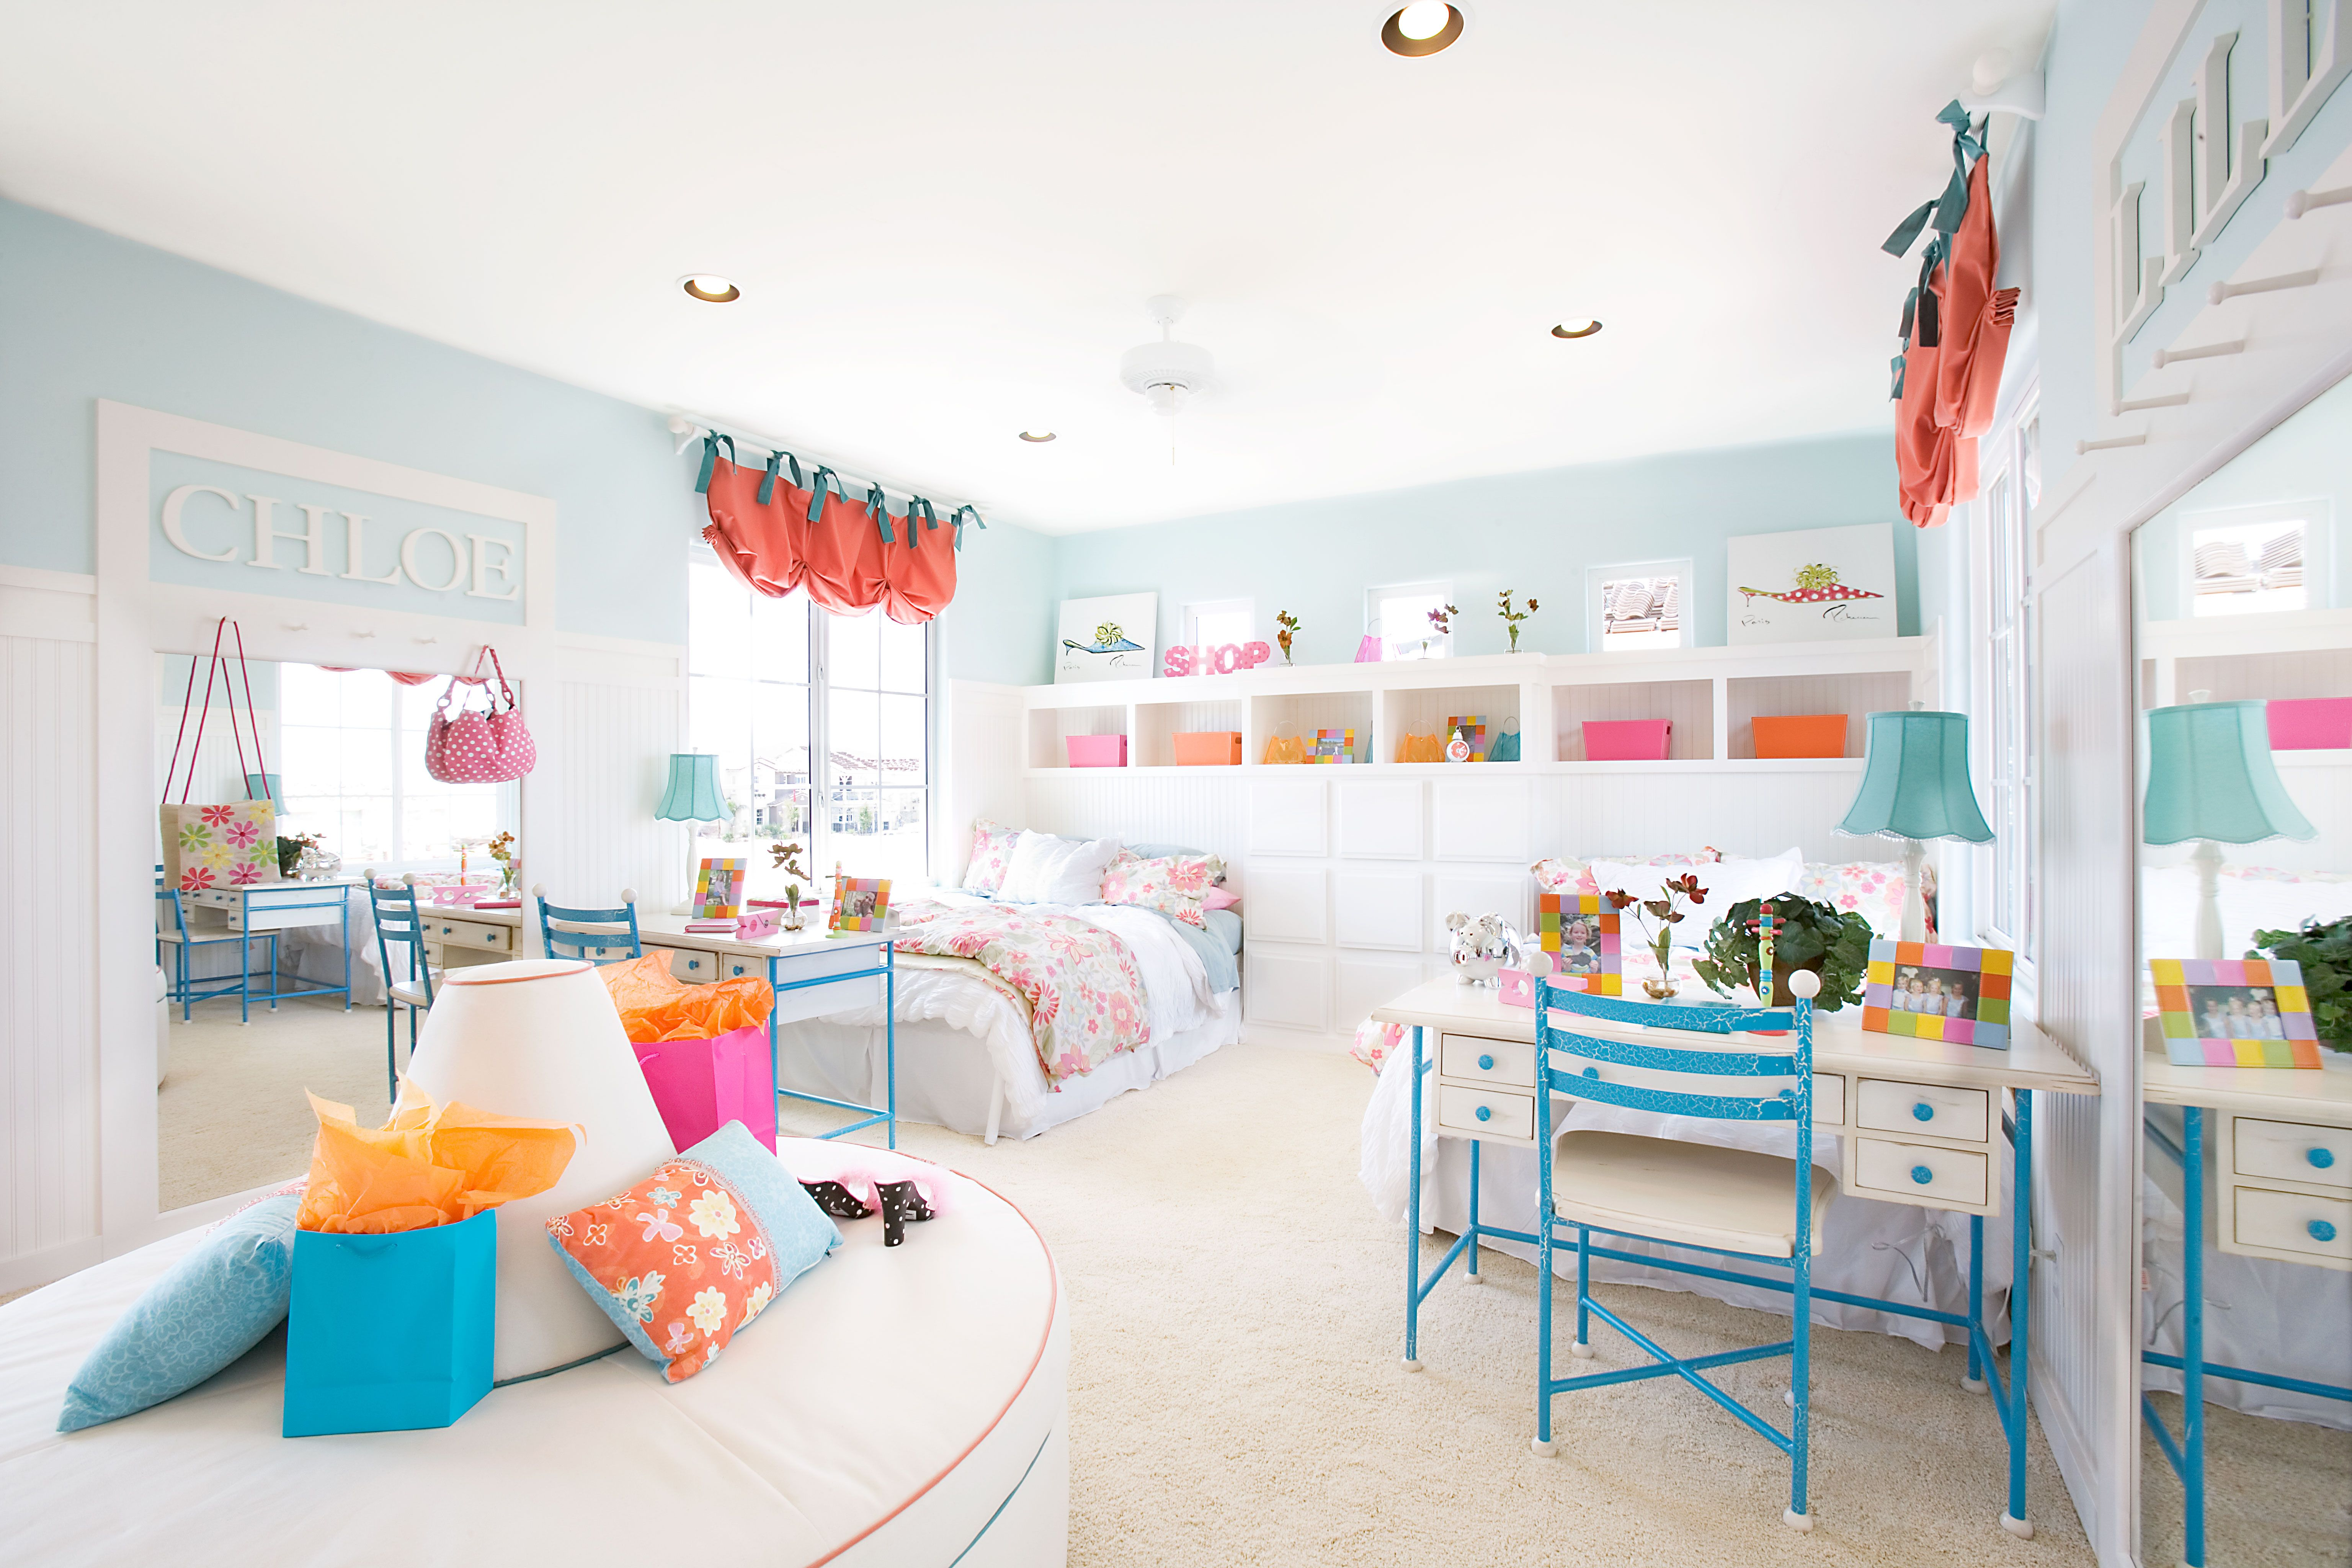 Bright Color Bedroom Ideas Part - 28: Find More Information For The Modern Bedroom Decor Ideas In Bright Colored  Bedrooms Design At Beauty Interior Home Inspiration Bedroom Ideas Perfect  ...